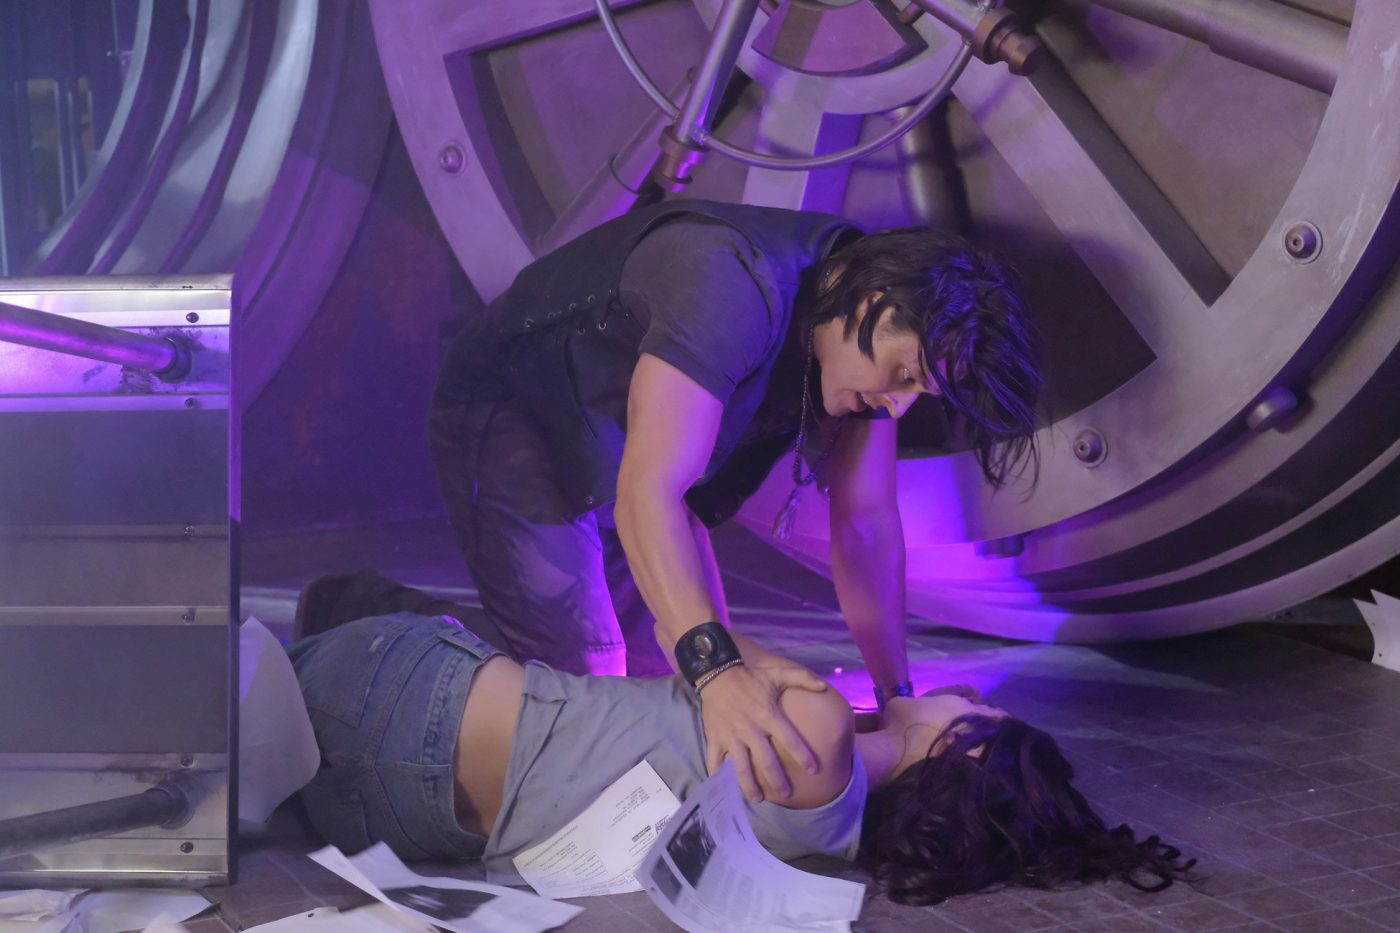 The Gifted: Season 1, Episode 2: rX - Or, what it's like to be a mutant